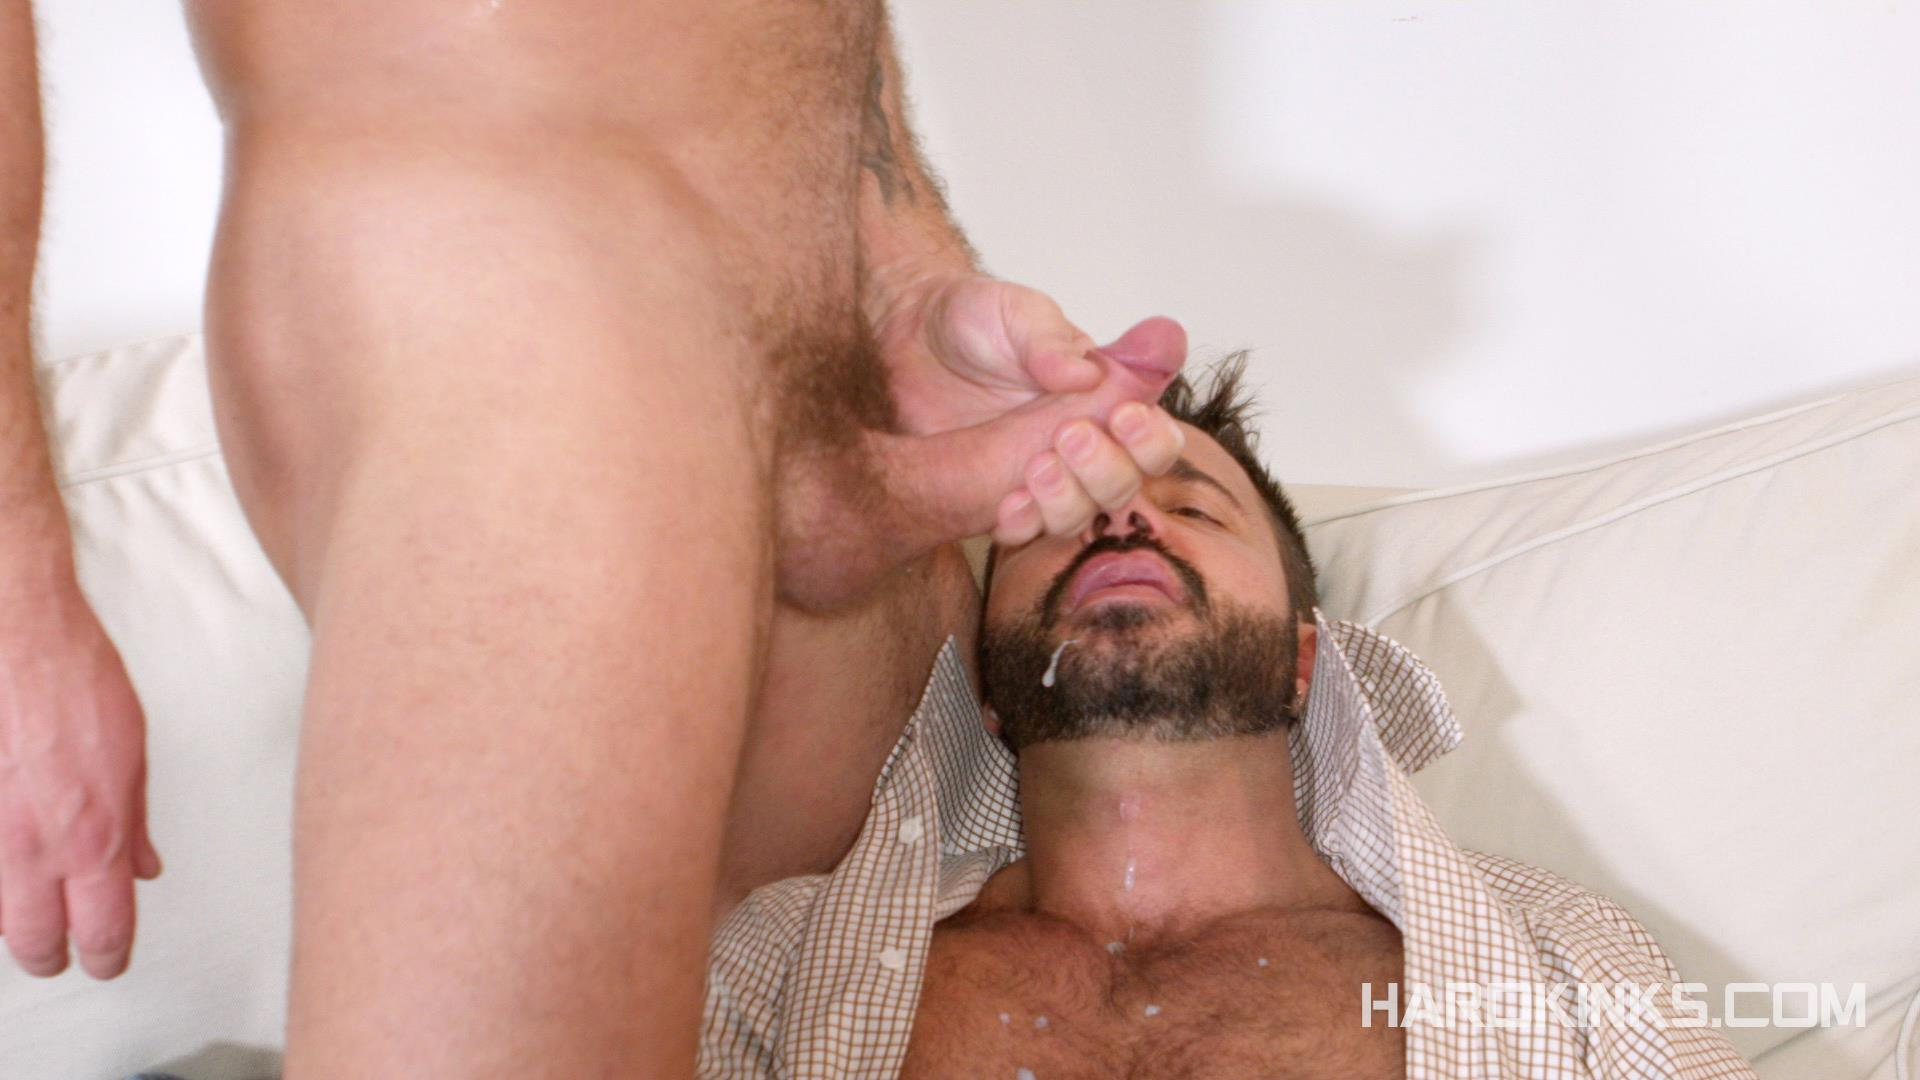 Hardkinks-Jessy-Ares-and-Martin-Mazza-Hairy-Alpha-Male-Amateur-Gay-Porn-12 Hairy Muscle Alpha Male Dominates His Coworker